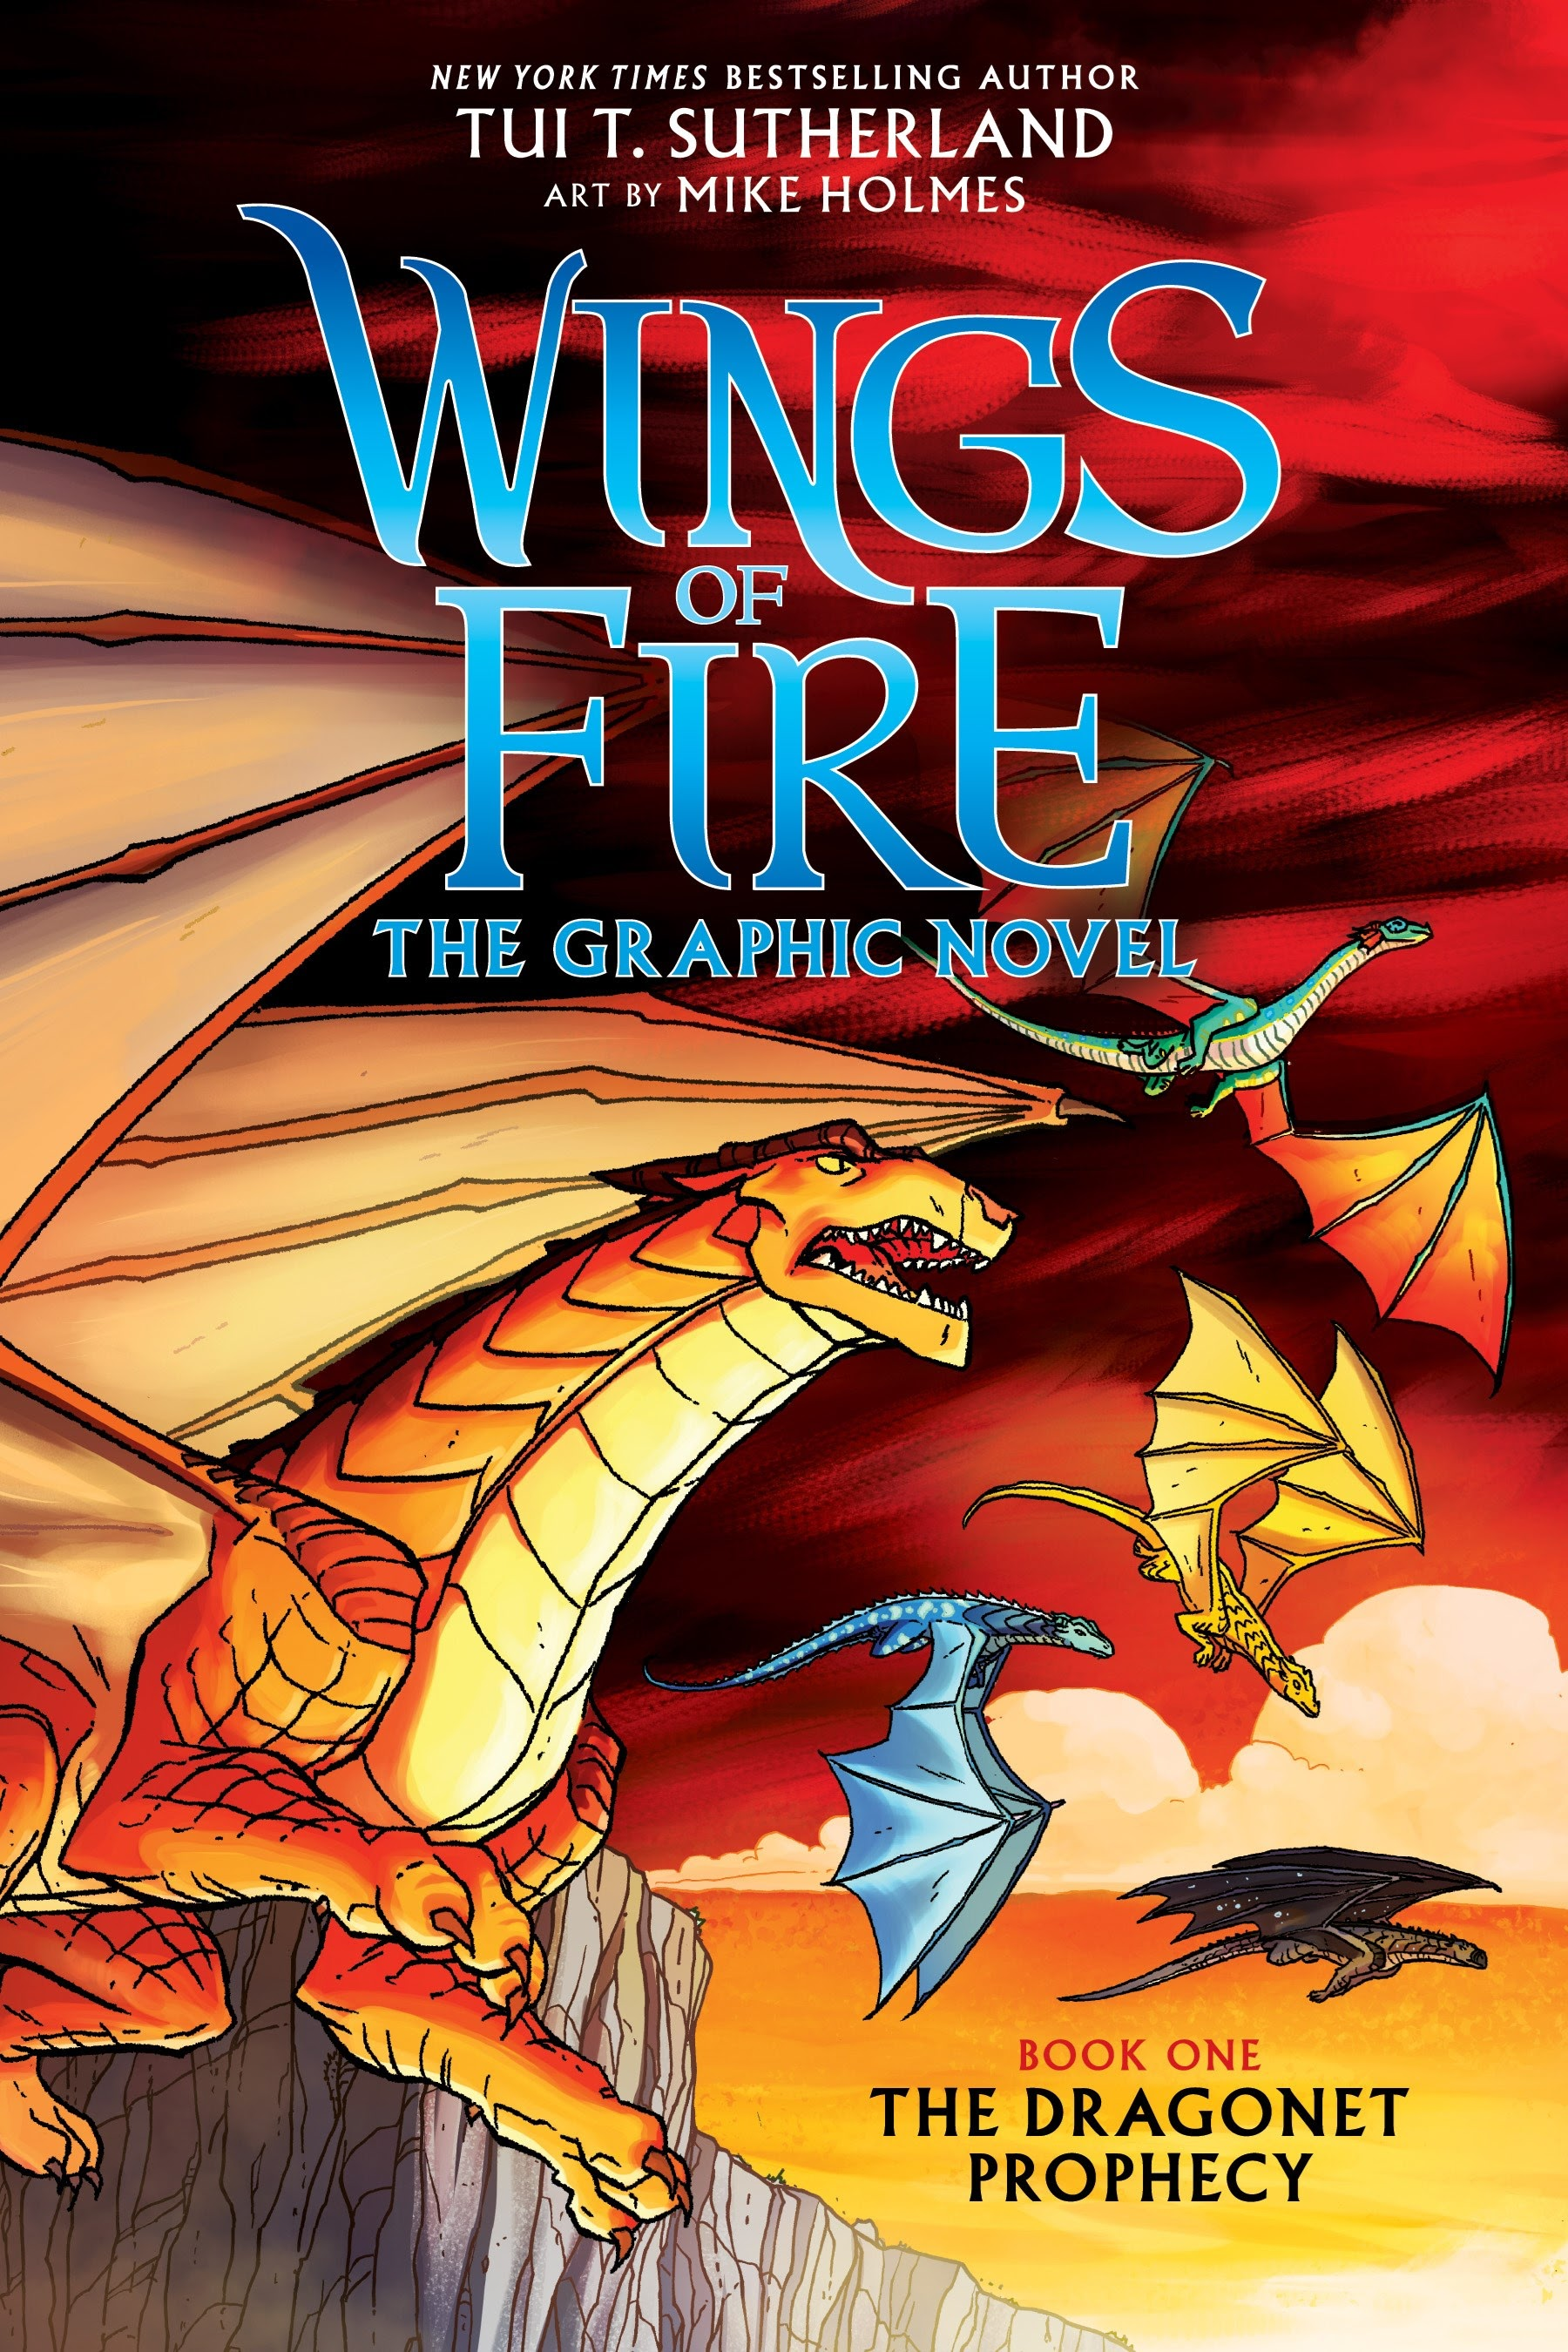 Wings of fire graphic novel wings of fire wiki fandom powered 11 ccuart Images